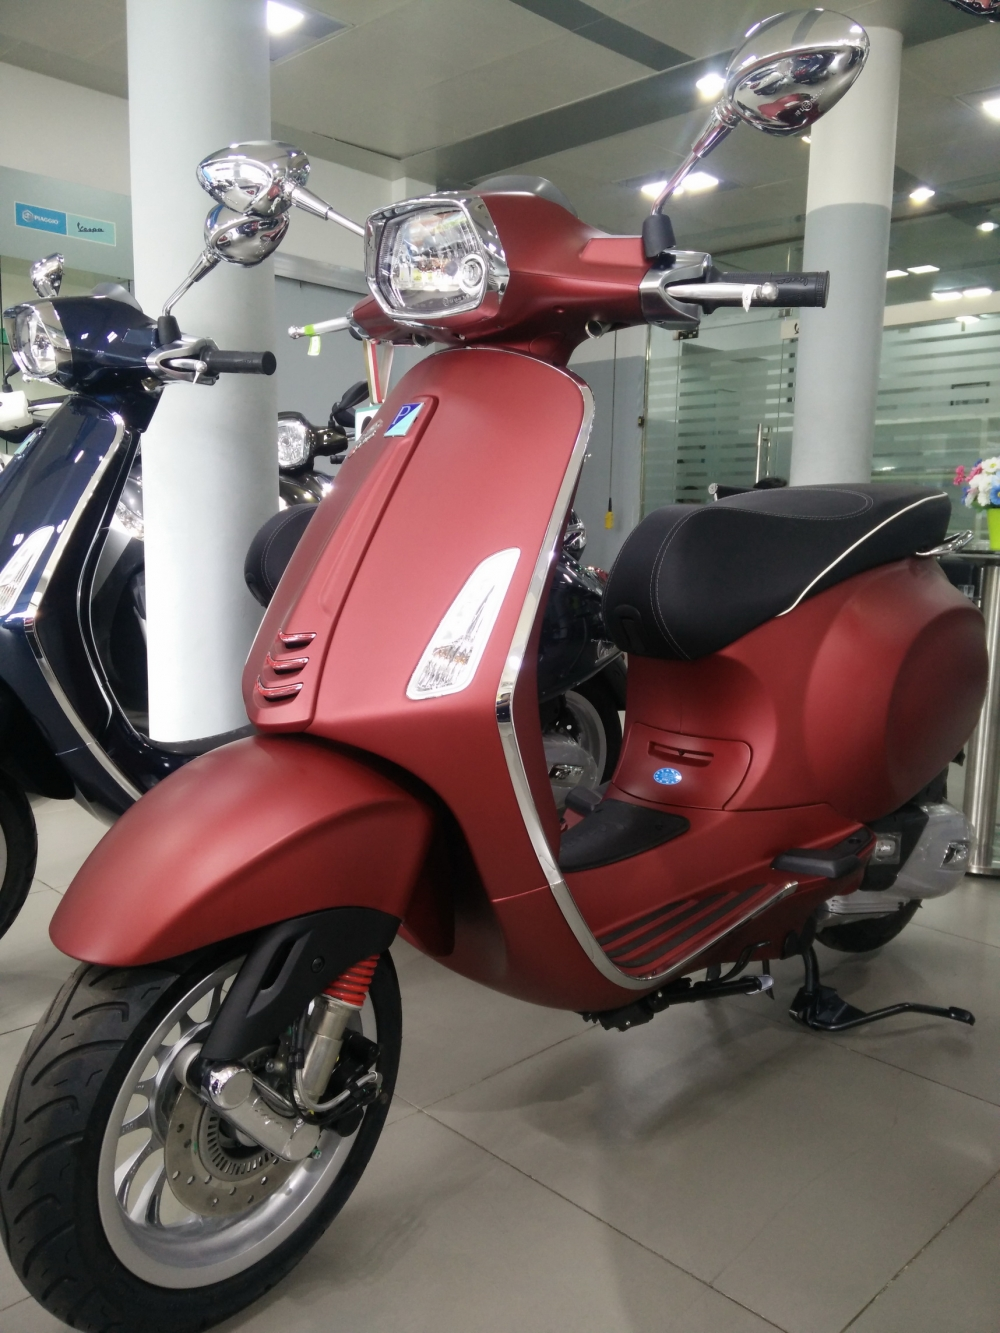 VESPA chinh hang gia tot nhat Update lien tuc - 17